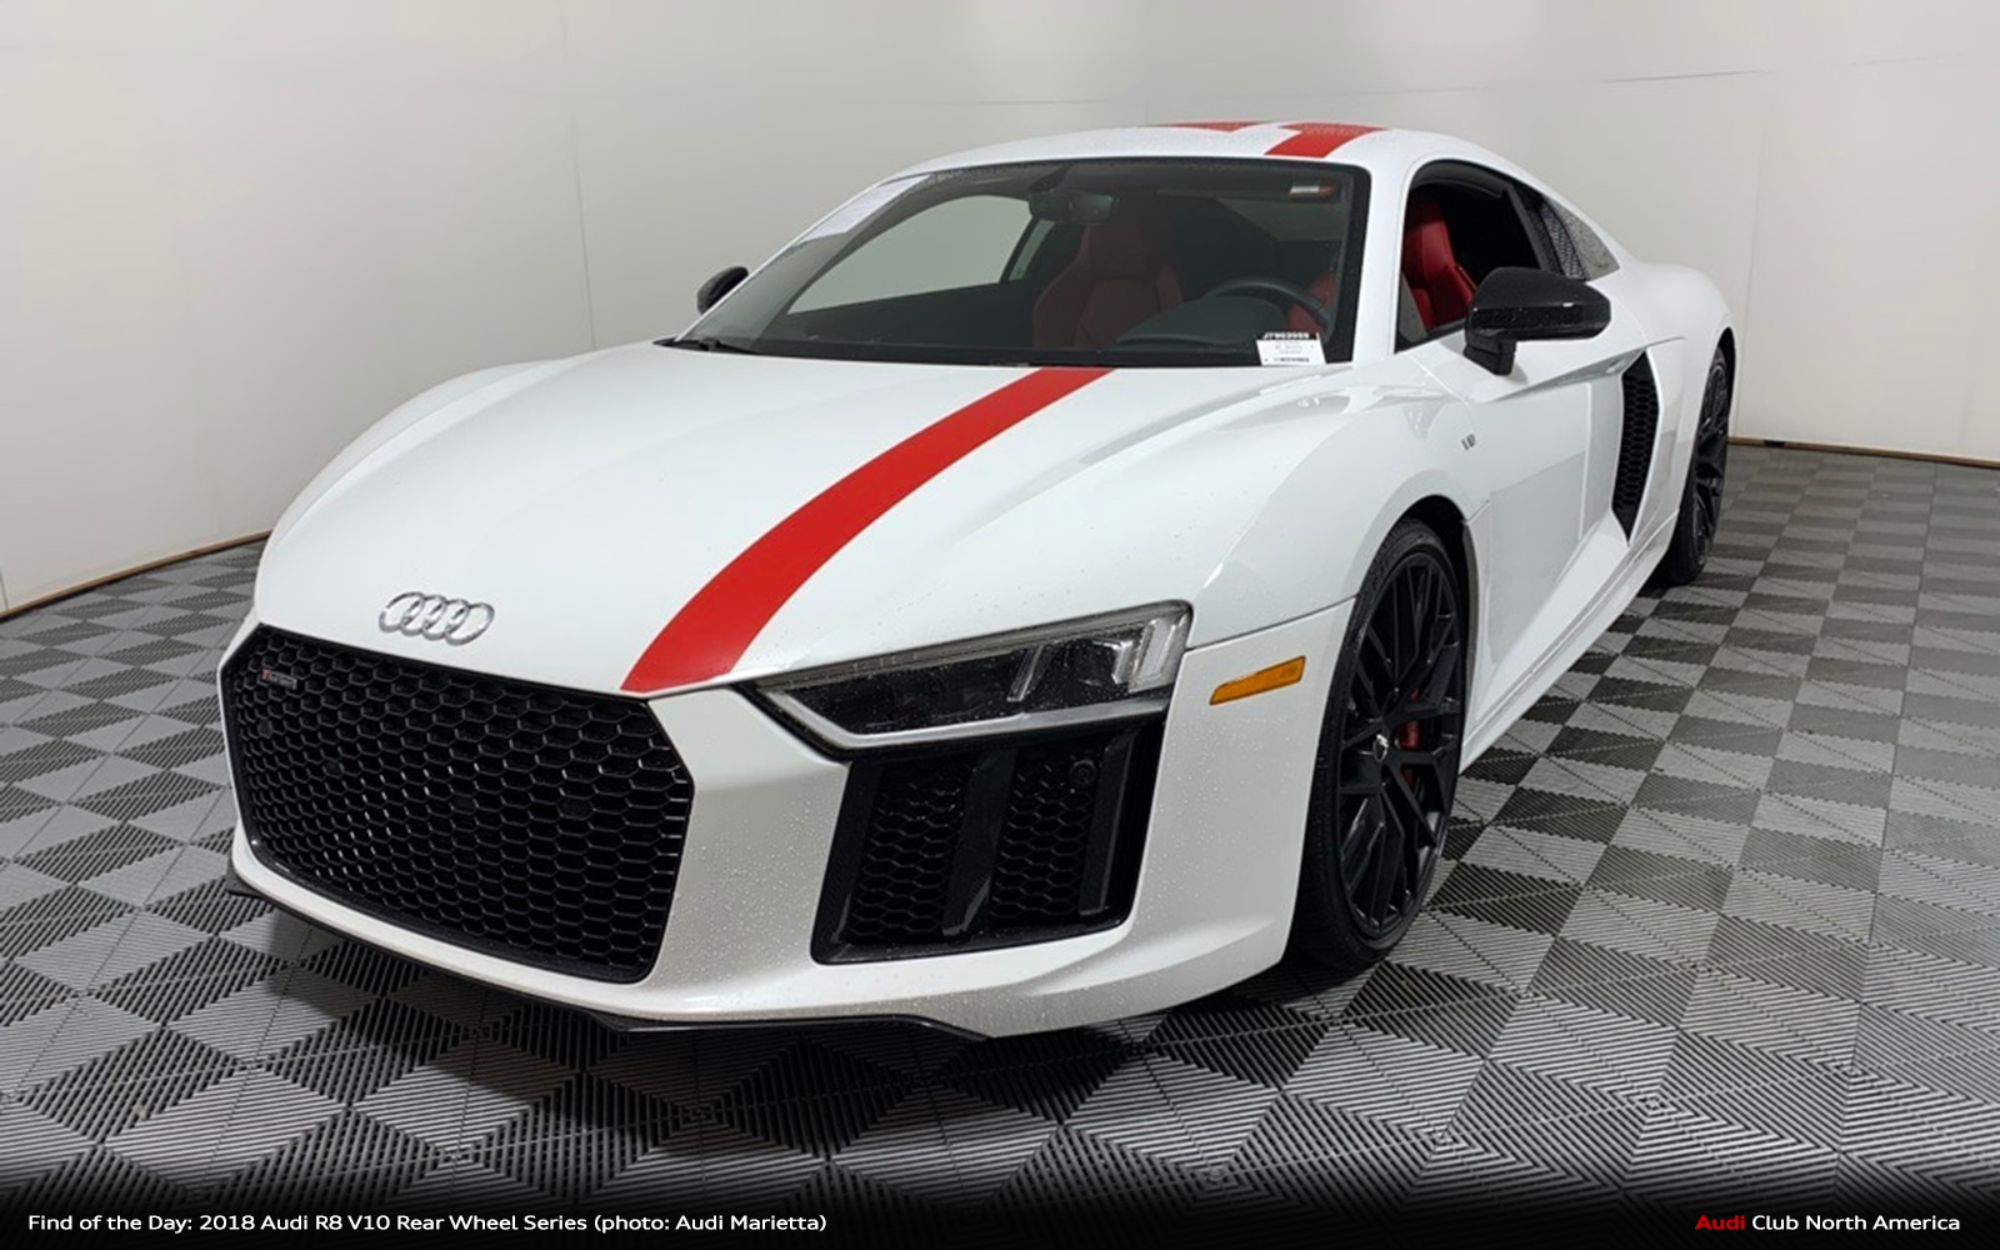 Find of the Day: 2018 Audi R8 V10 Rear Wheel Series